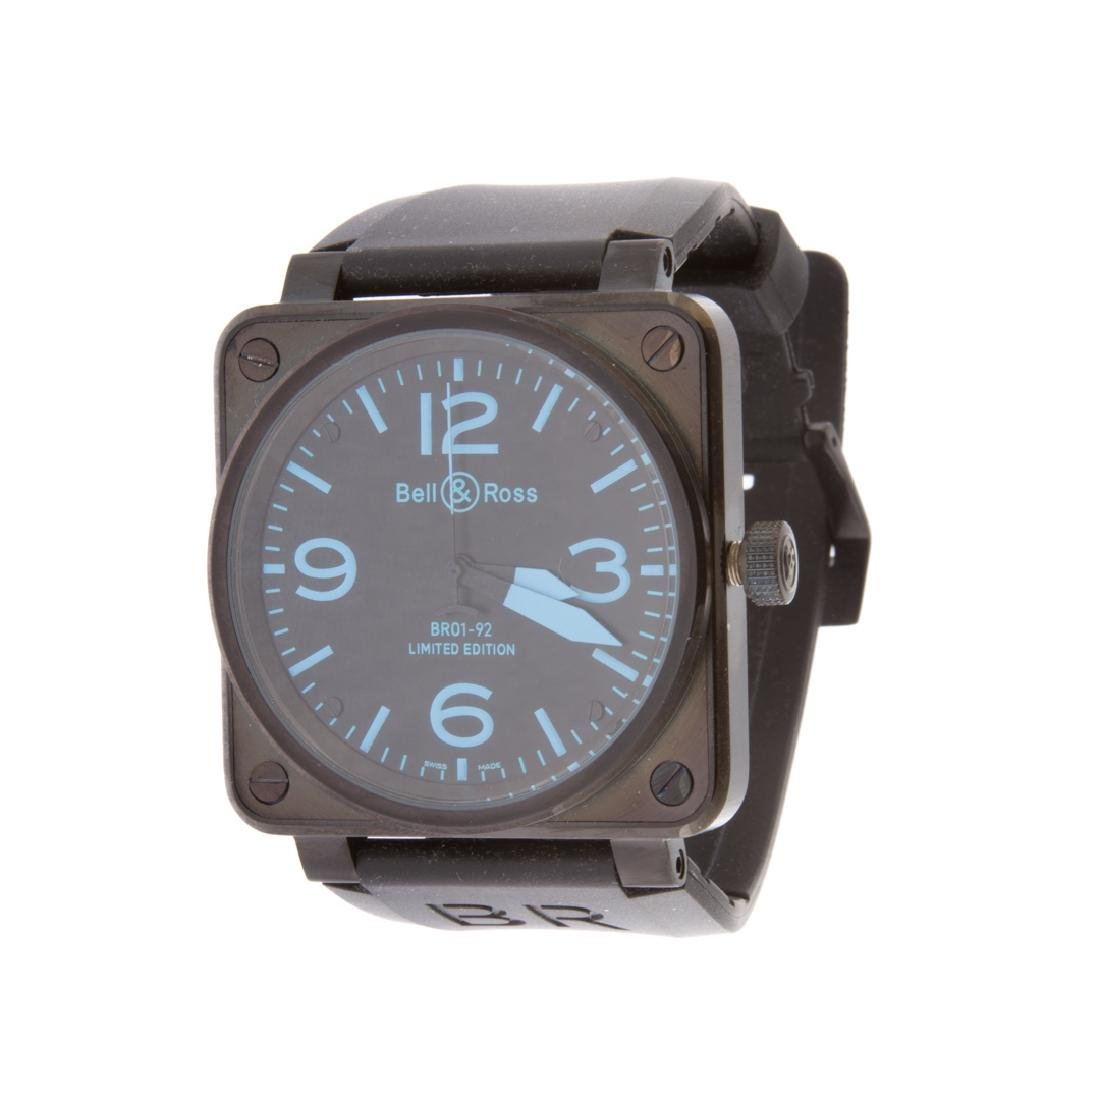 Two Gent's Bell & Ross Inspired Watches - 2